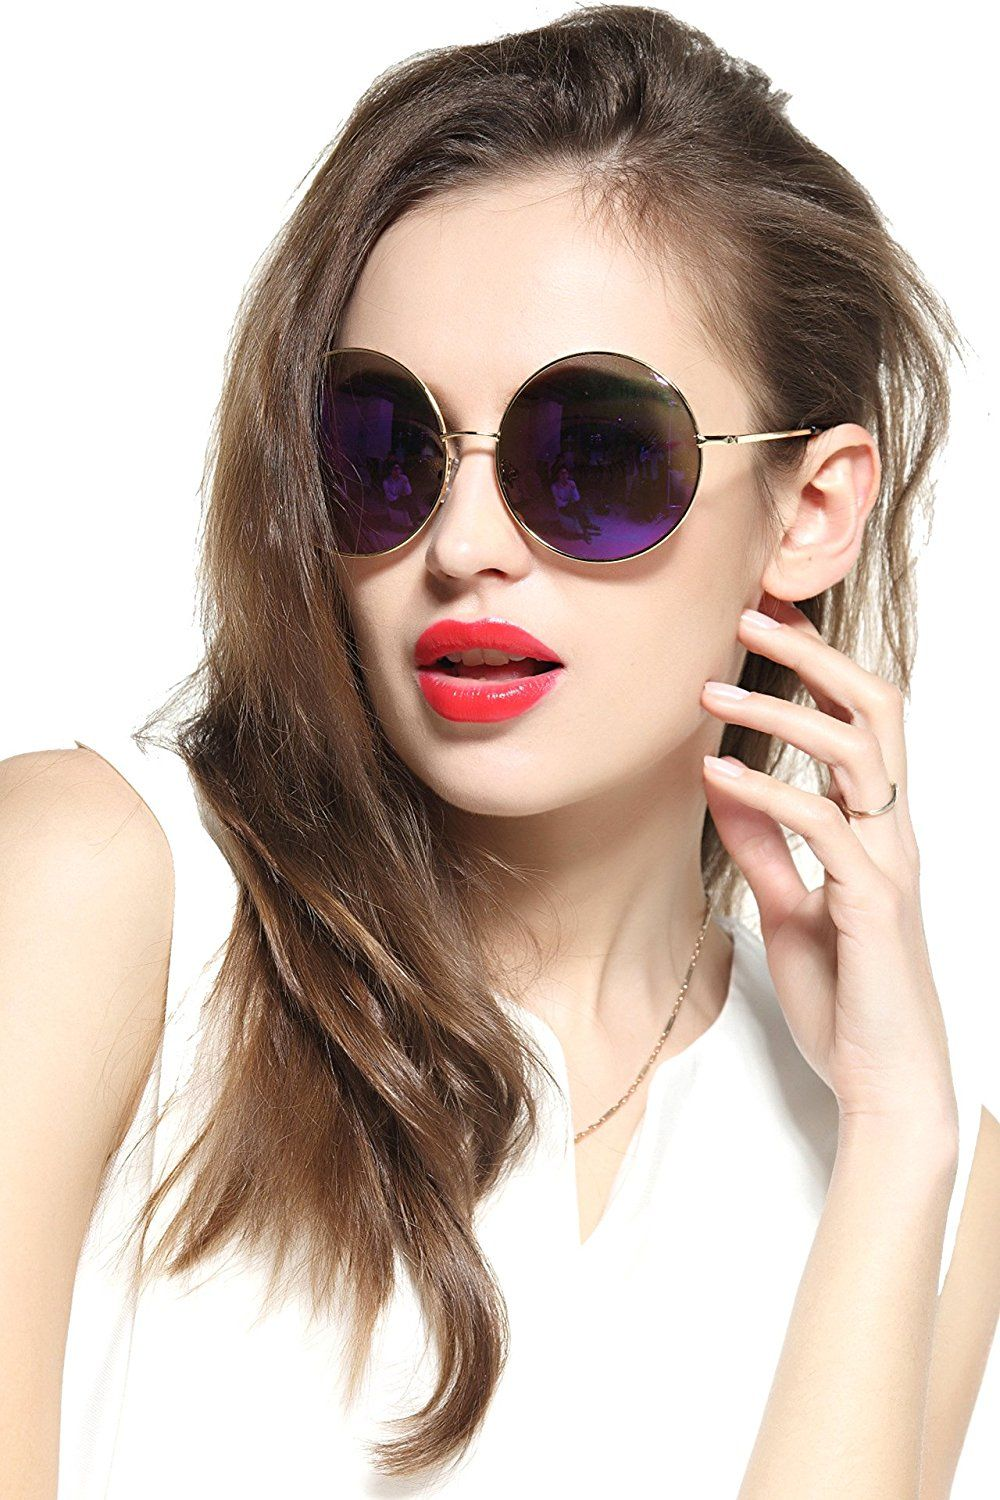 c3c7c0eb89 AmazonSmile  GEELOOK Oversized Round Circle Mirrored Hippie Hipster  Sunglasses - Metal Frame  Clothing